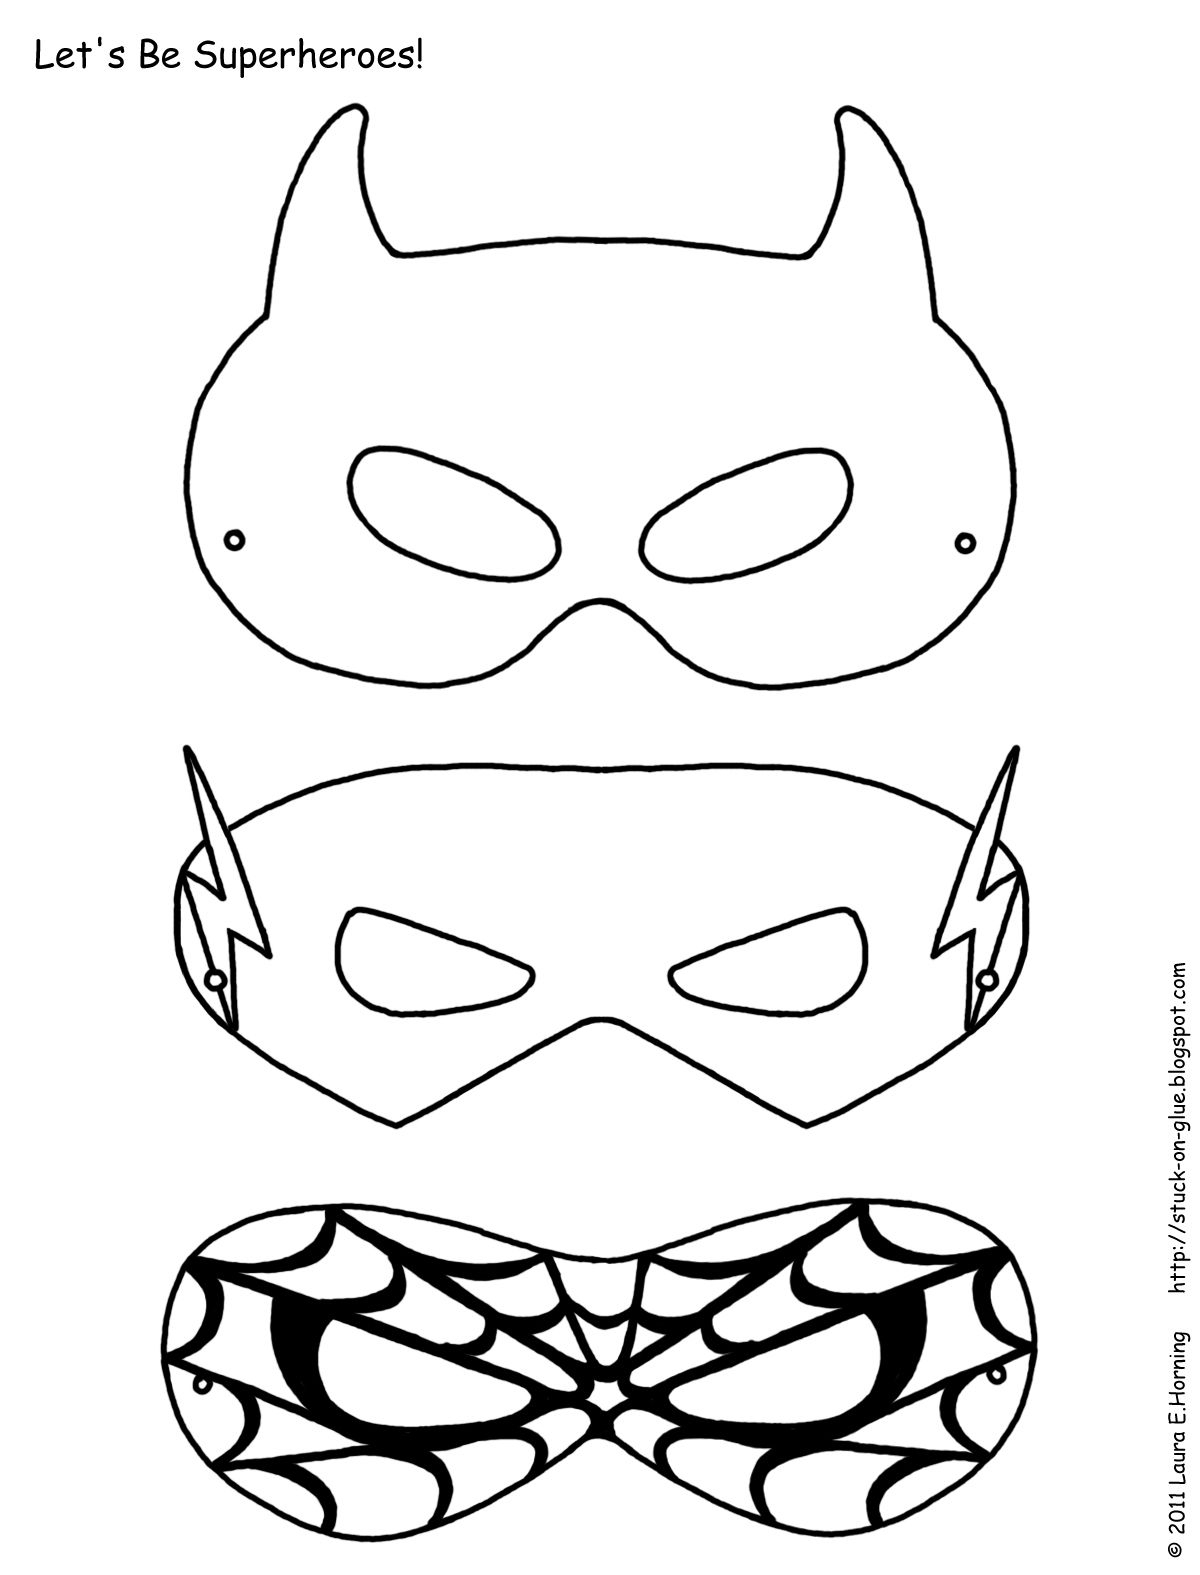 Mask Printable | Free Printable Superhero Mask Template | Masks - Free Printable Face Masks